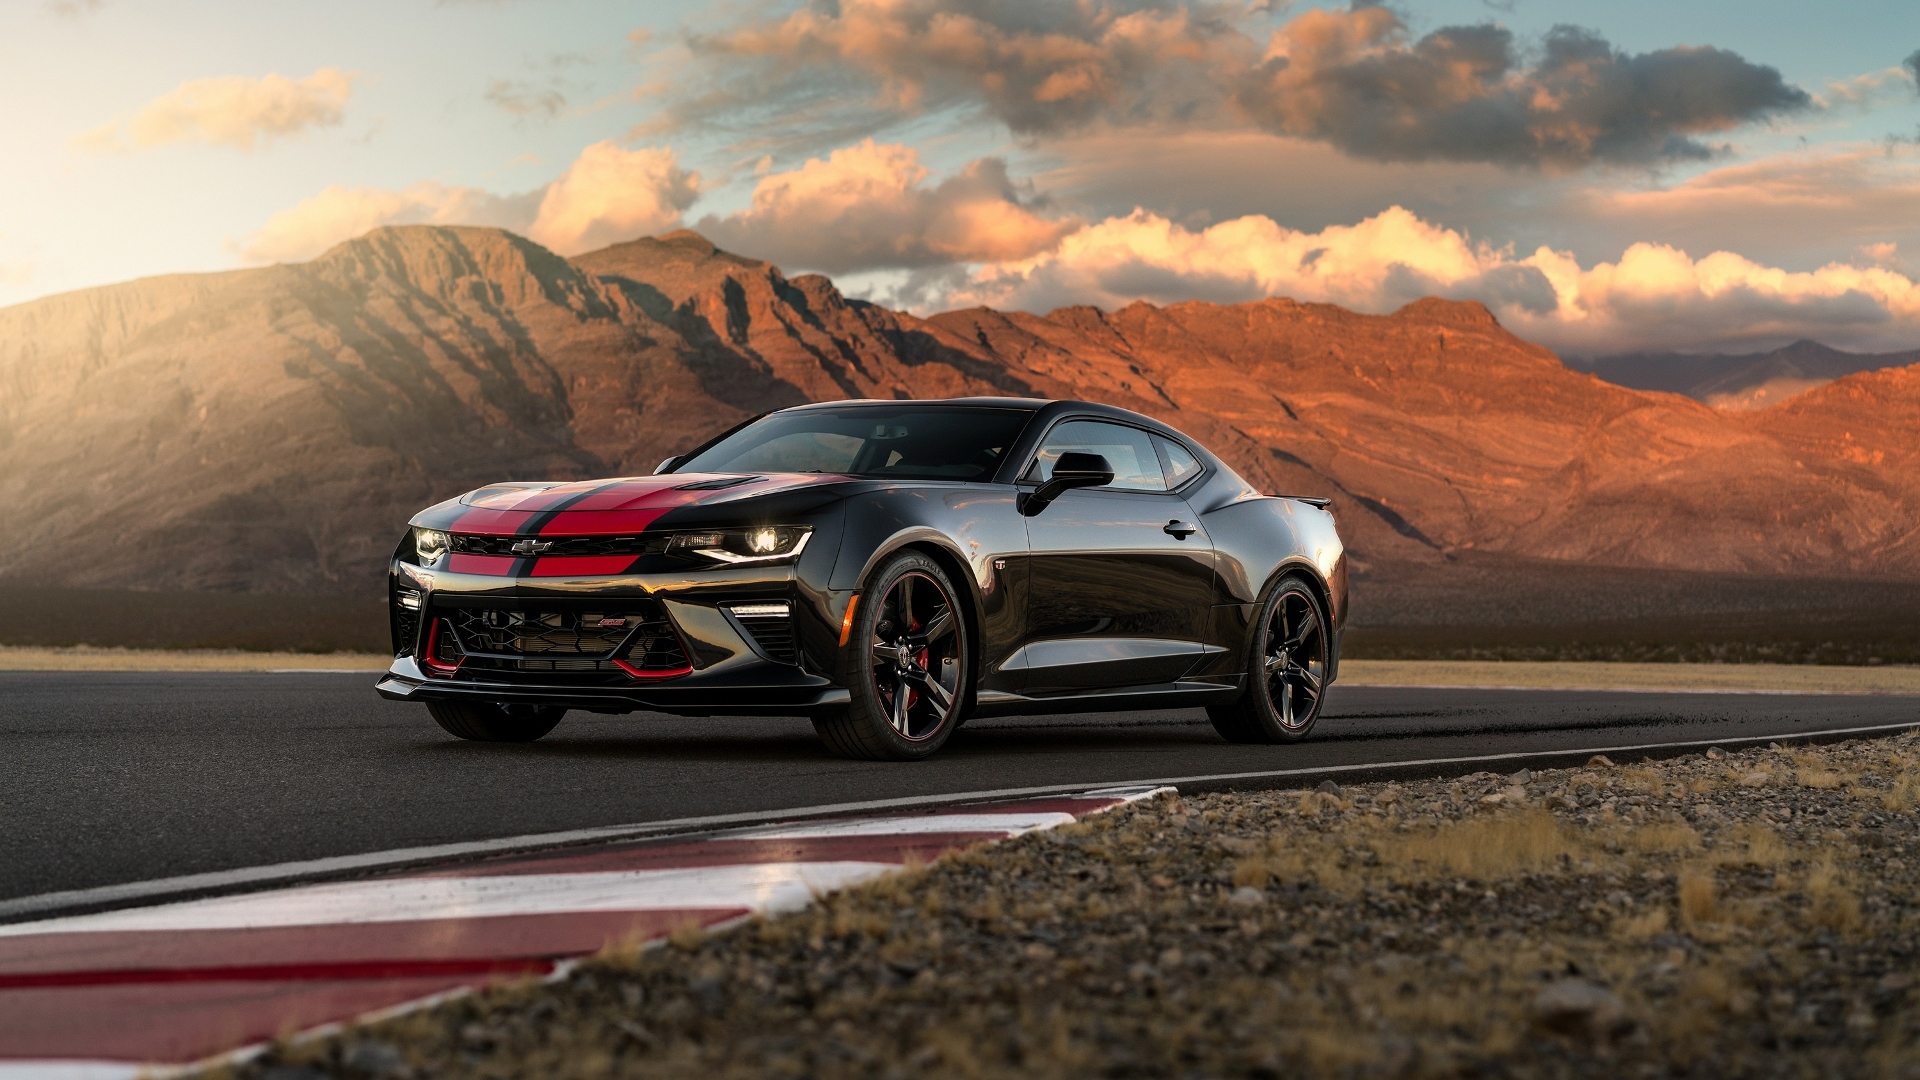 Chevy Introduces New Crate Engines, Performance Parts At Sema 2022 Chevy Camaro Parts, Problems, Performance Parts